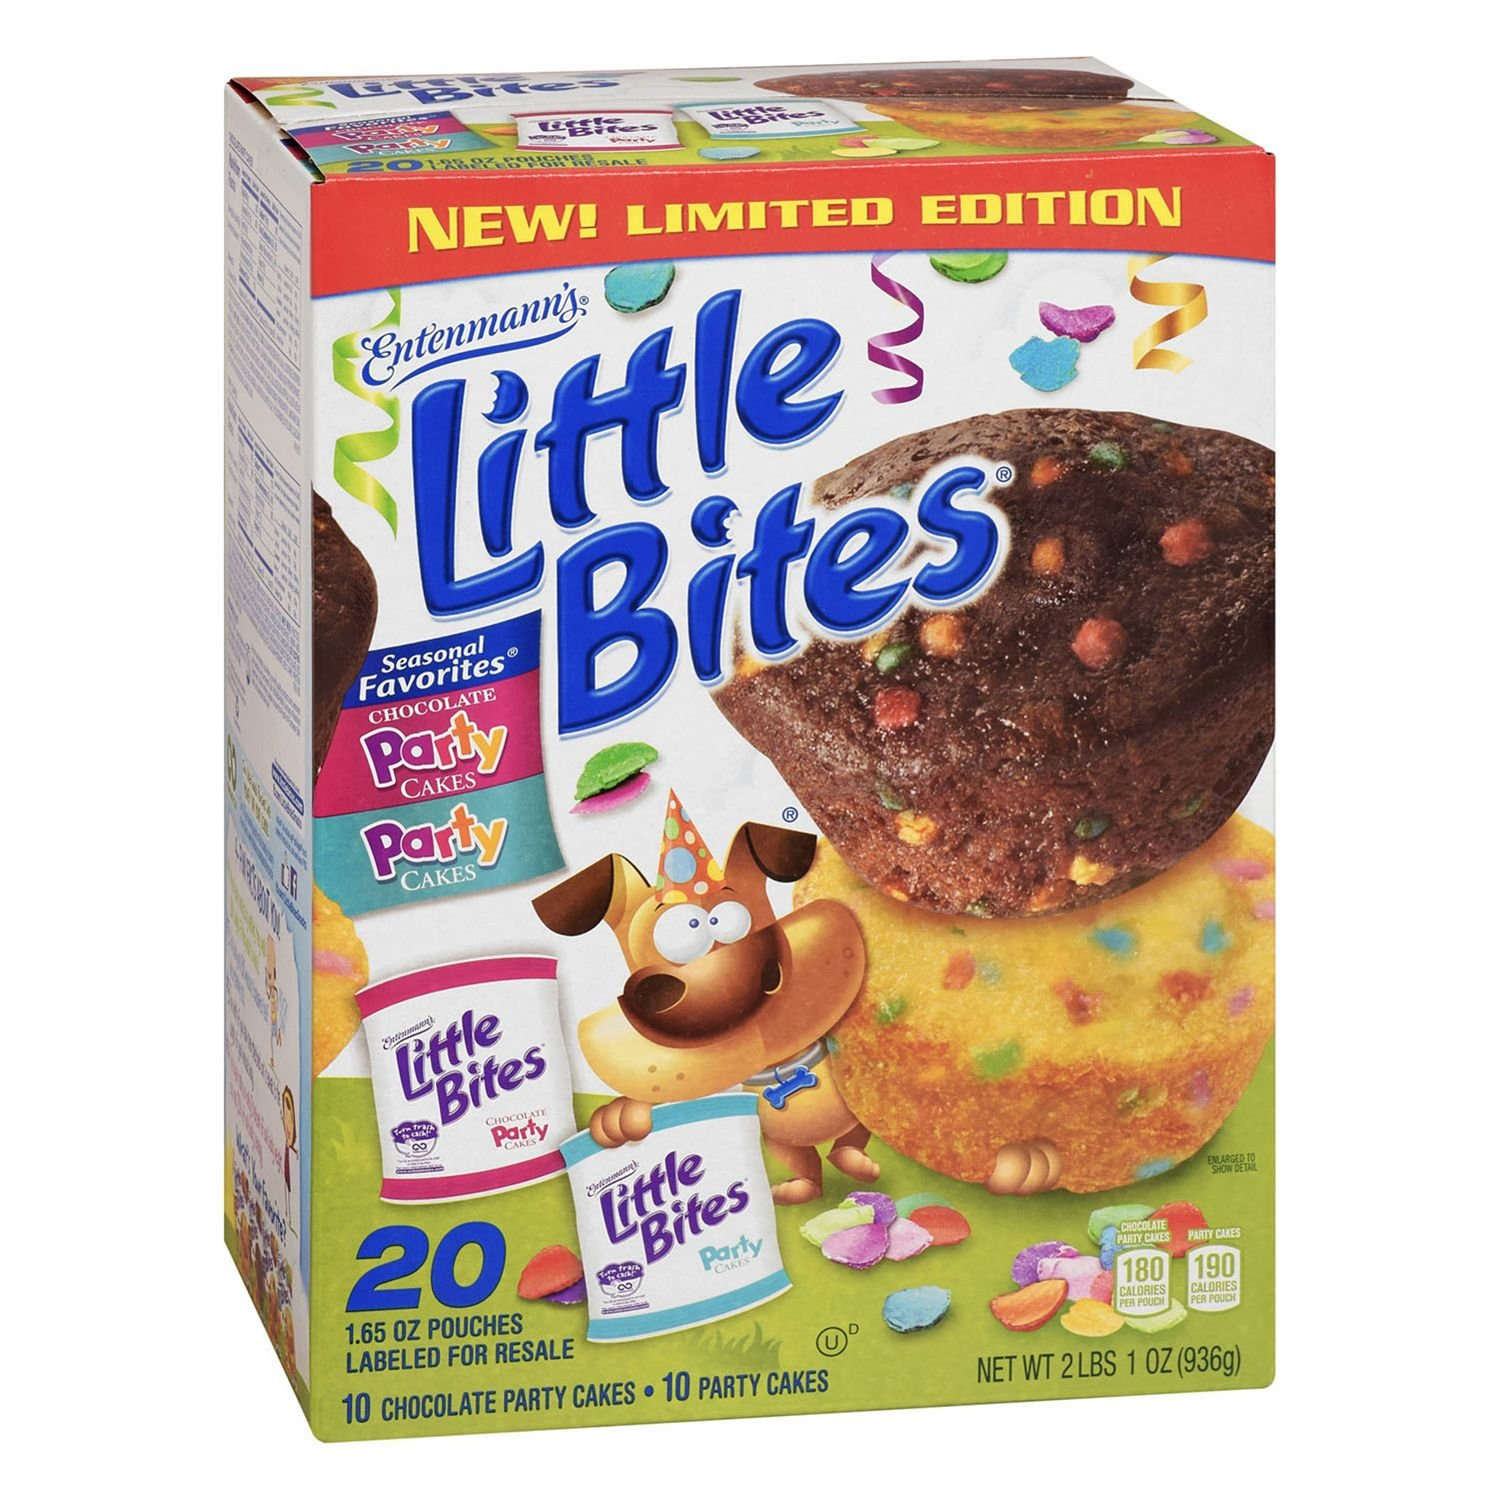 Entenmann's Little Bites Chocolate and Yellow Party Cake Muffins (20 ct.)